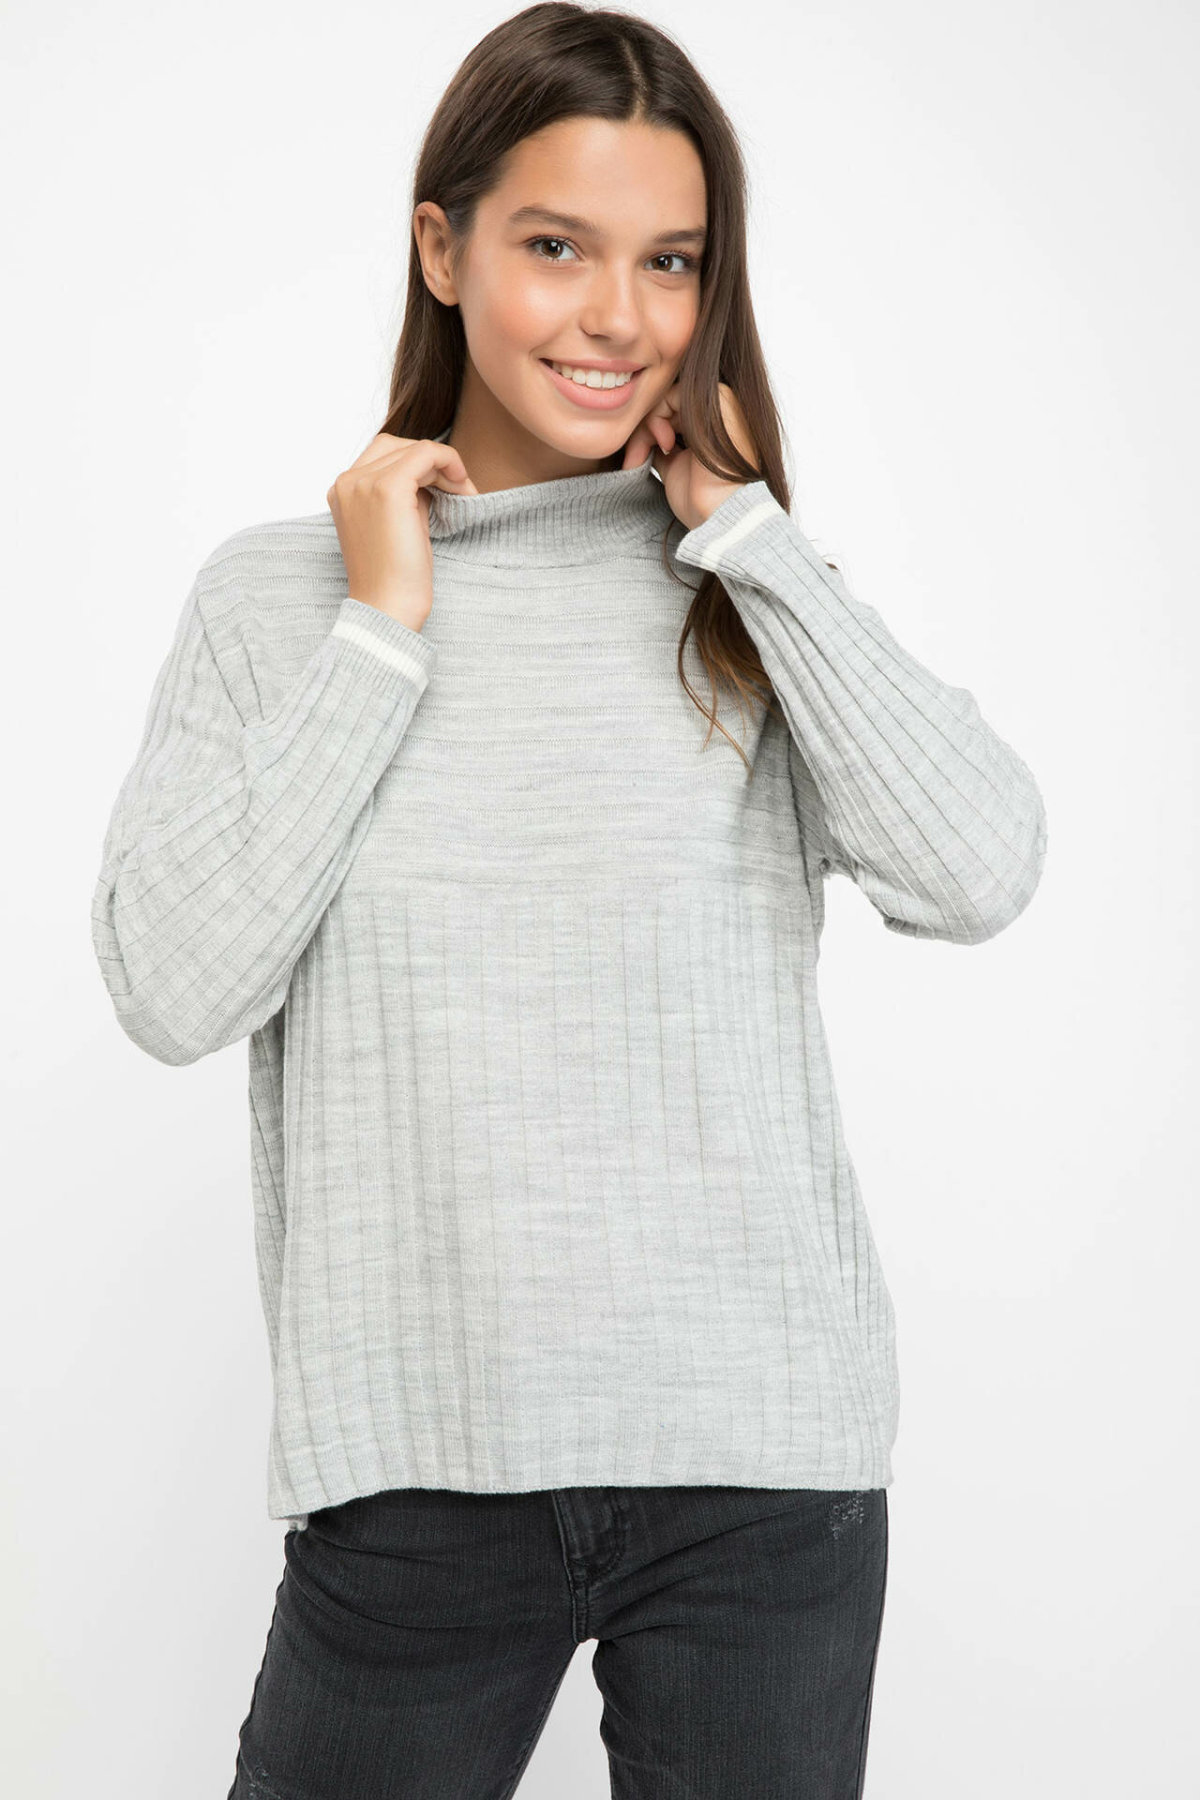 DeFacto Woman Simple Solid Turtleneck Pullovers Loose Long Sleeves Simple Casual Pullovers Women Autumn New - G2658AZ18AU